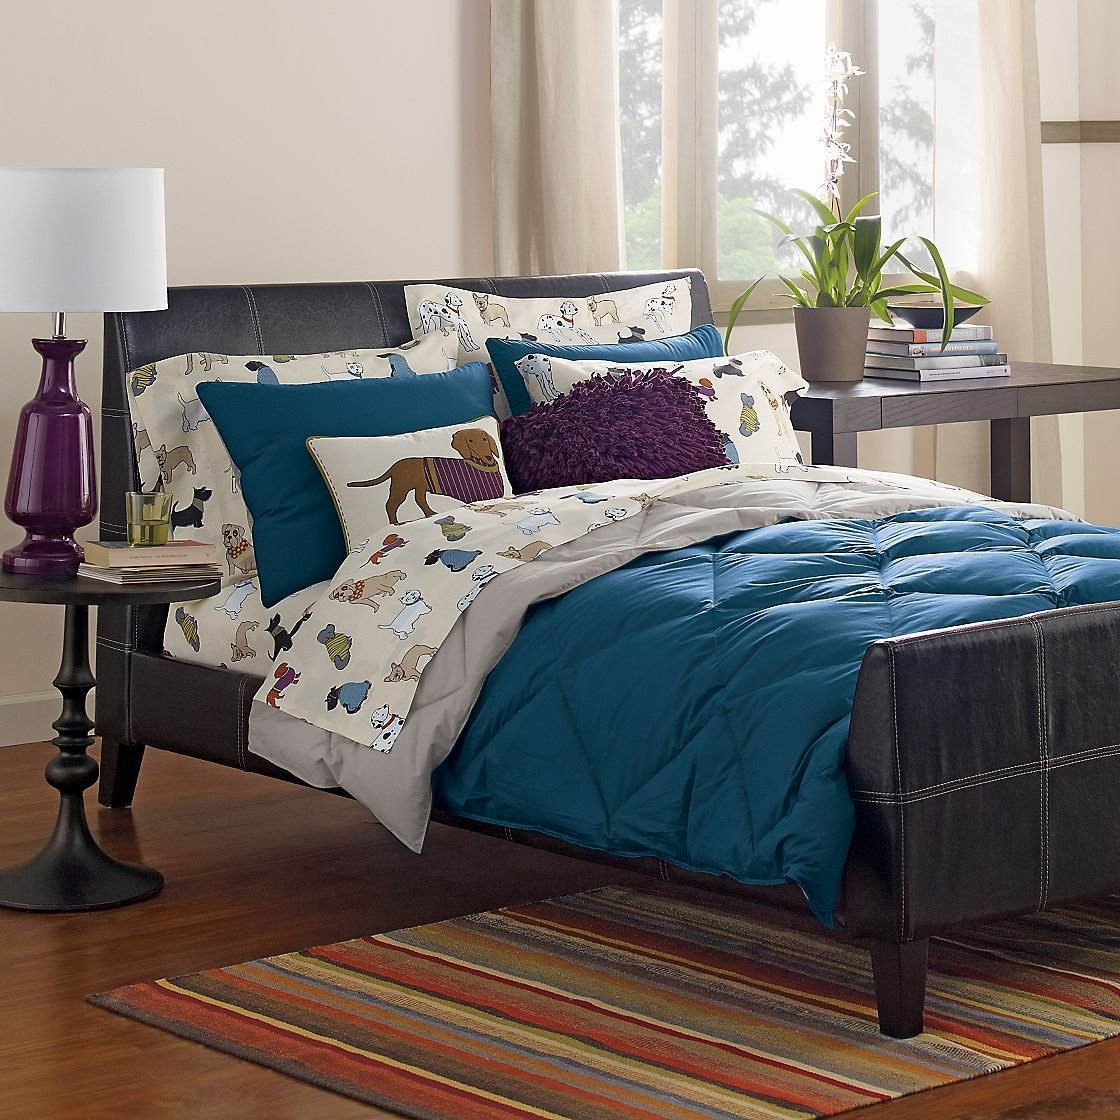 Best Vikingwaterford Com Page 170 Blue And Green Striped Cotton Bedspread With Green Tailored With Pictures